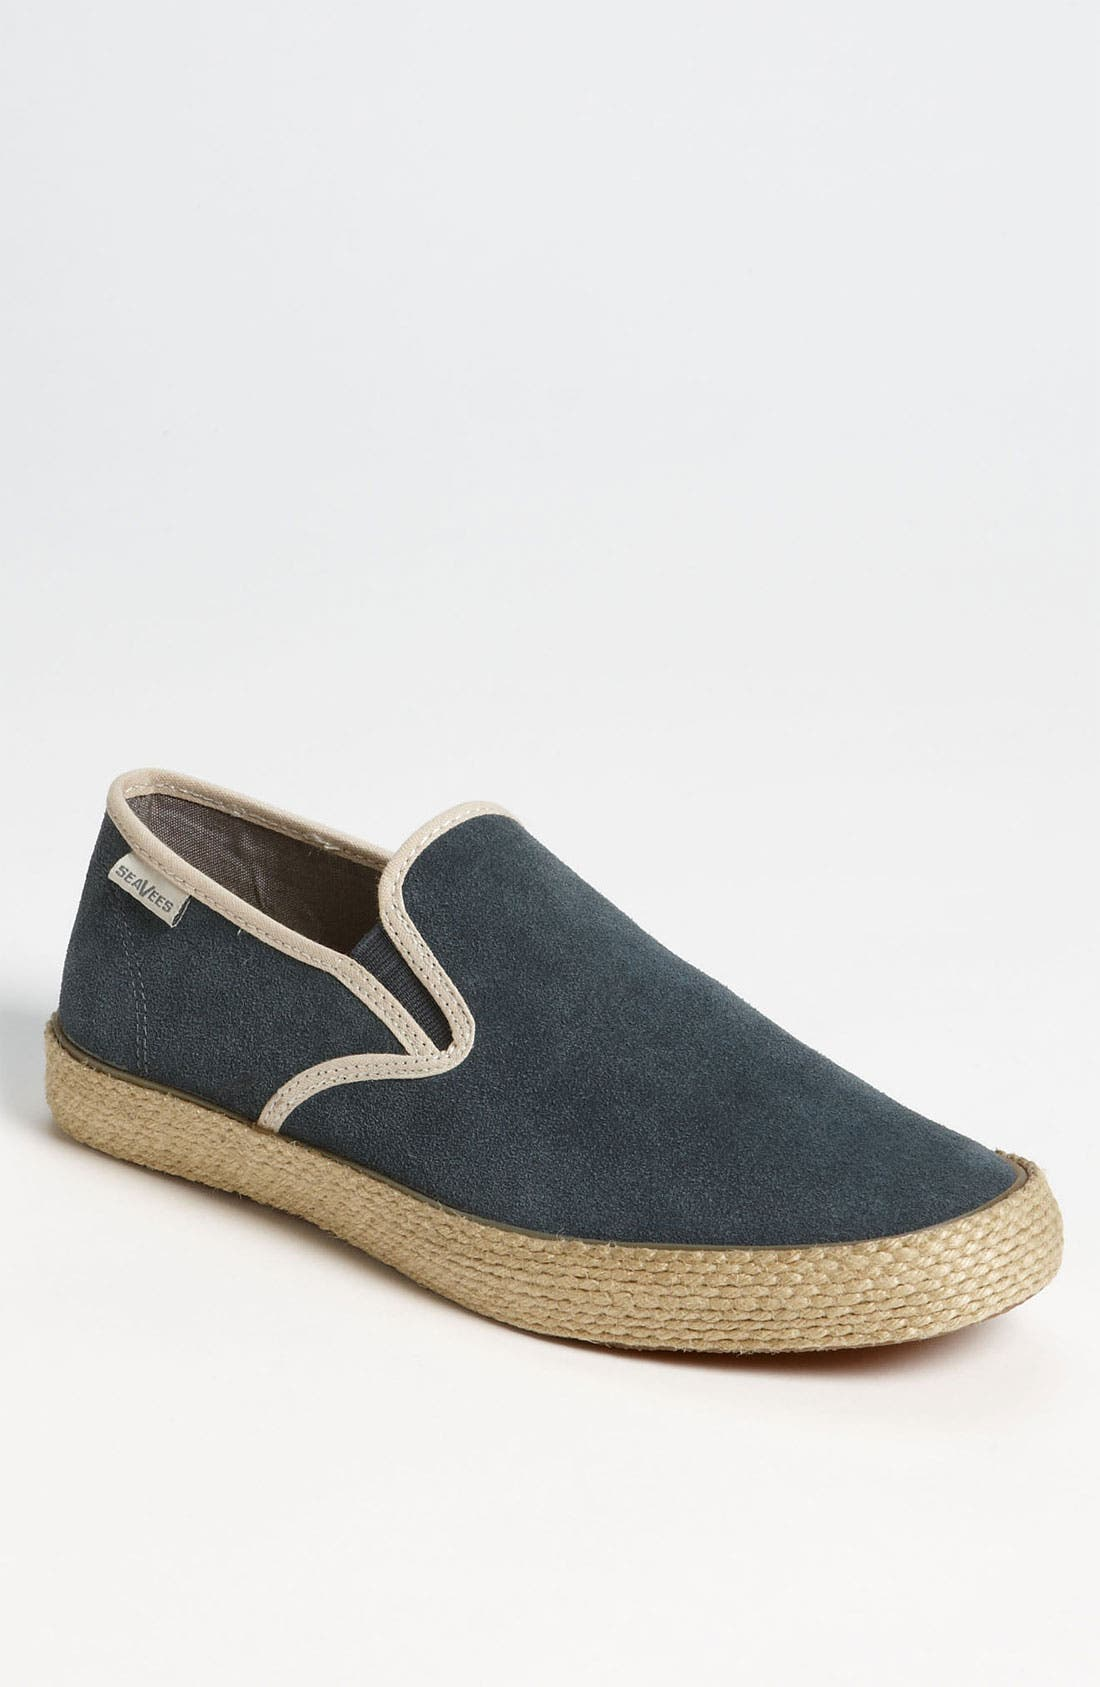 Alternate Image 1 Selected - SeaVees '02/64 Baja' Espadrille Slip-On